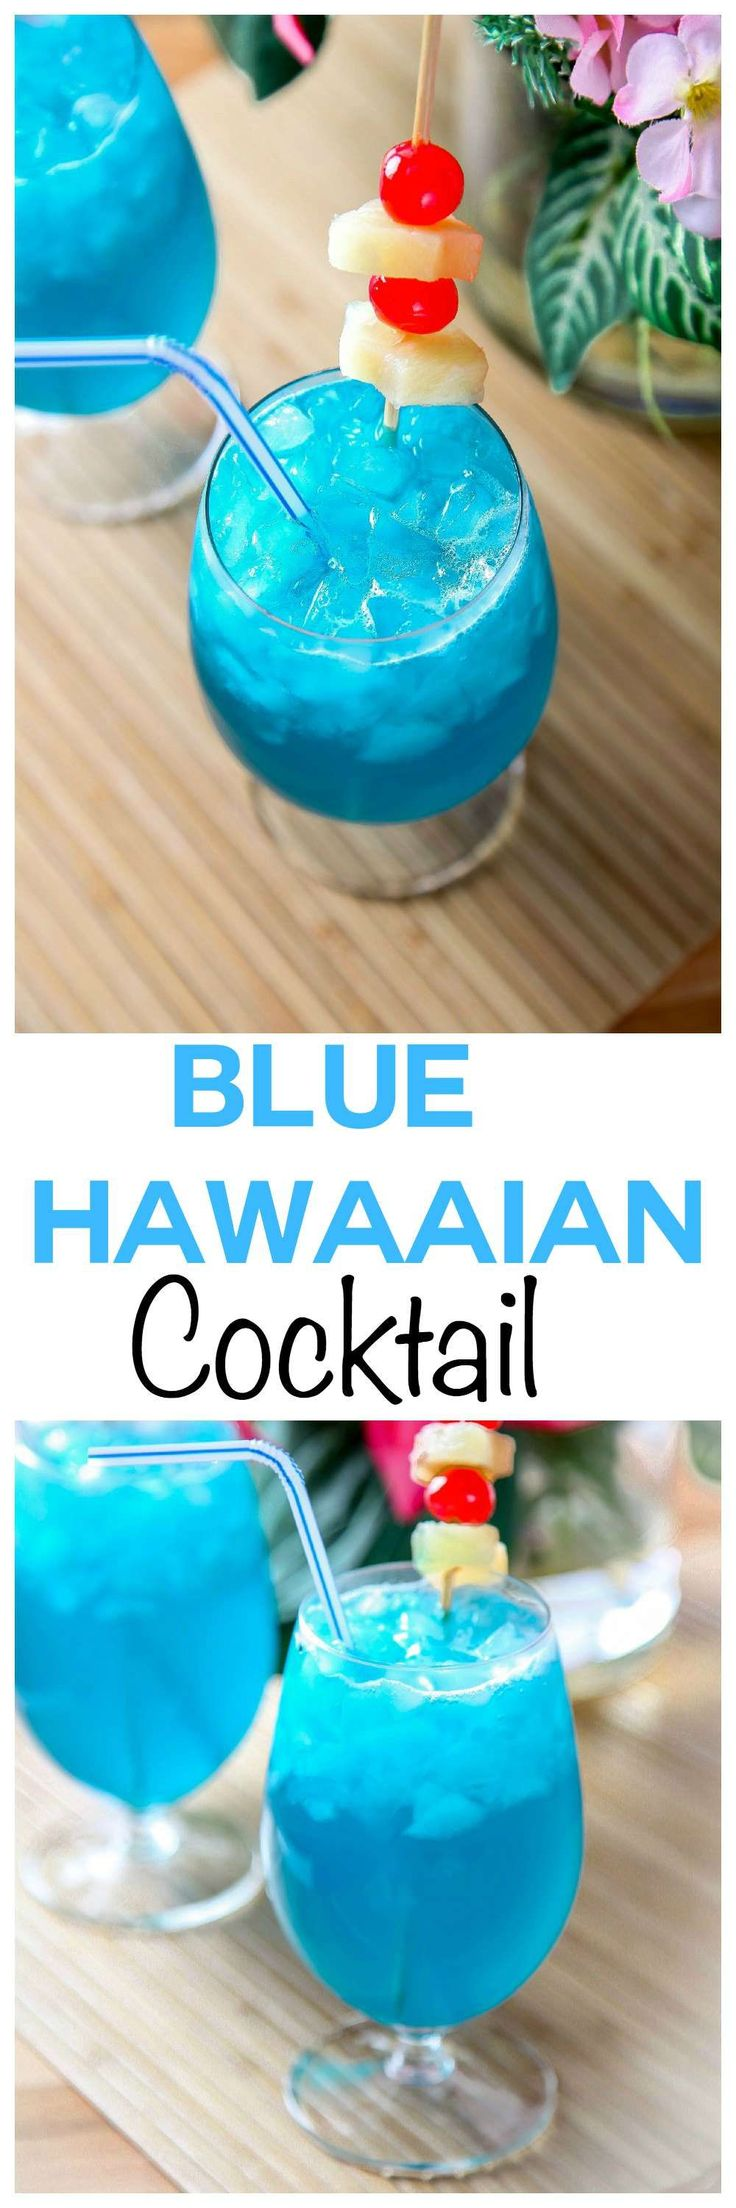 25 best ideas about blue hawaiian drink on pinterest blue hawaiian blue punch recipes and. Black Bedroom Furniture Sets. Home Design Ideas